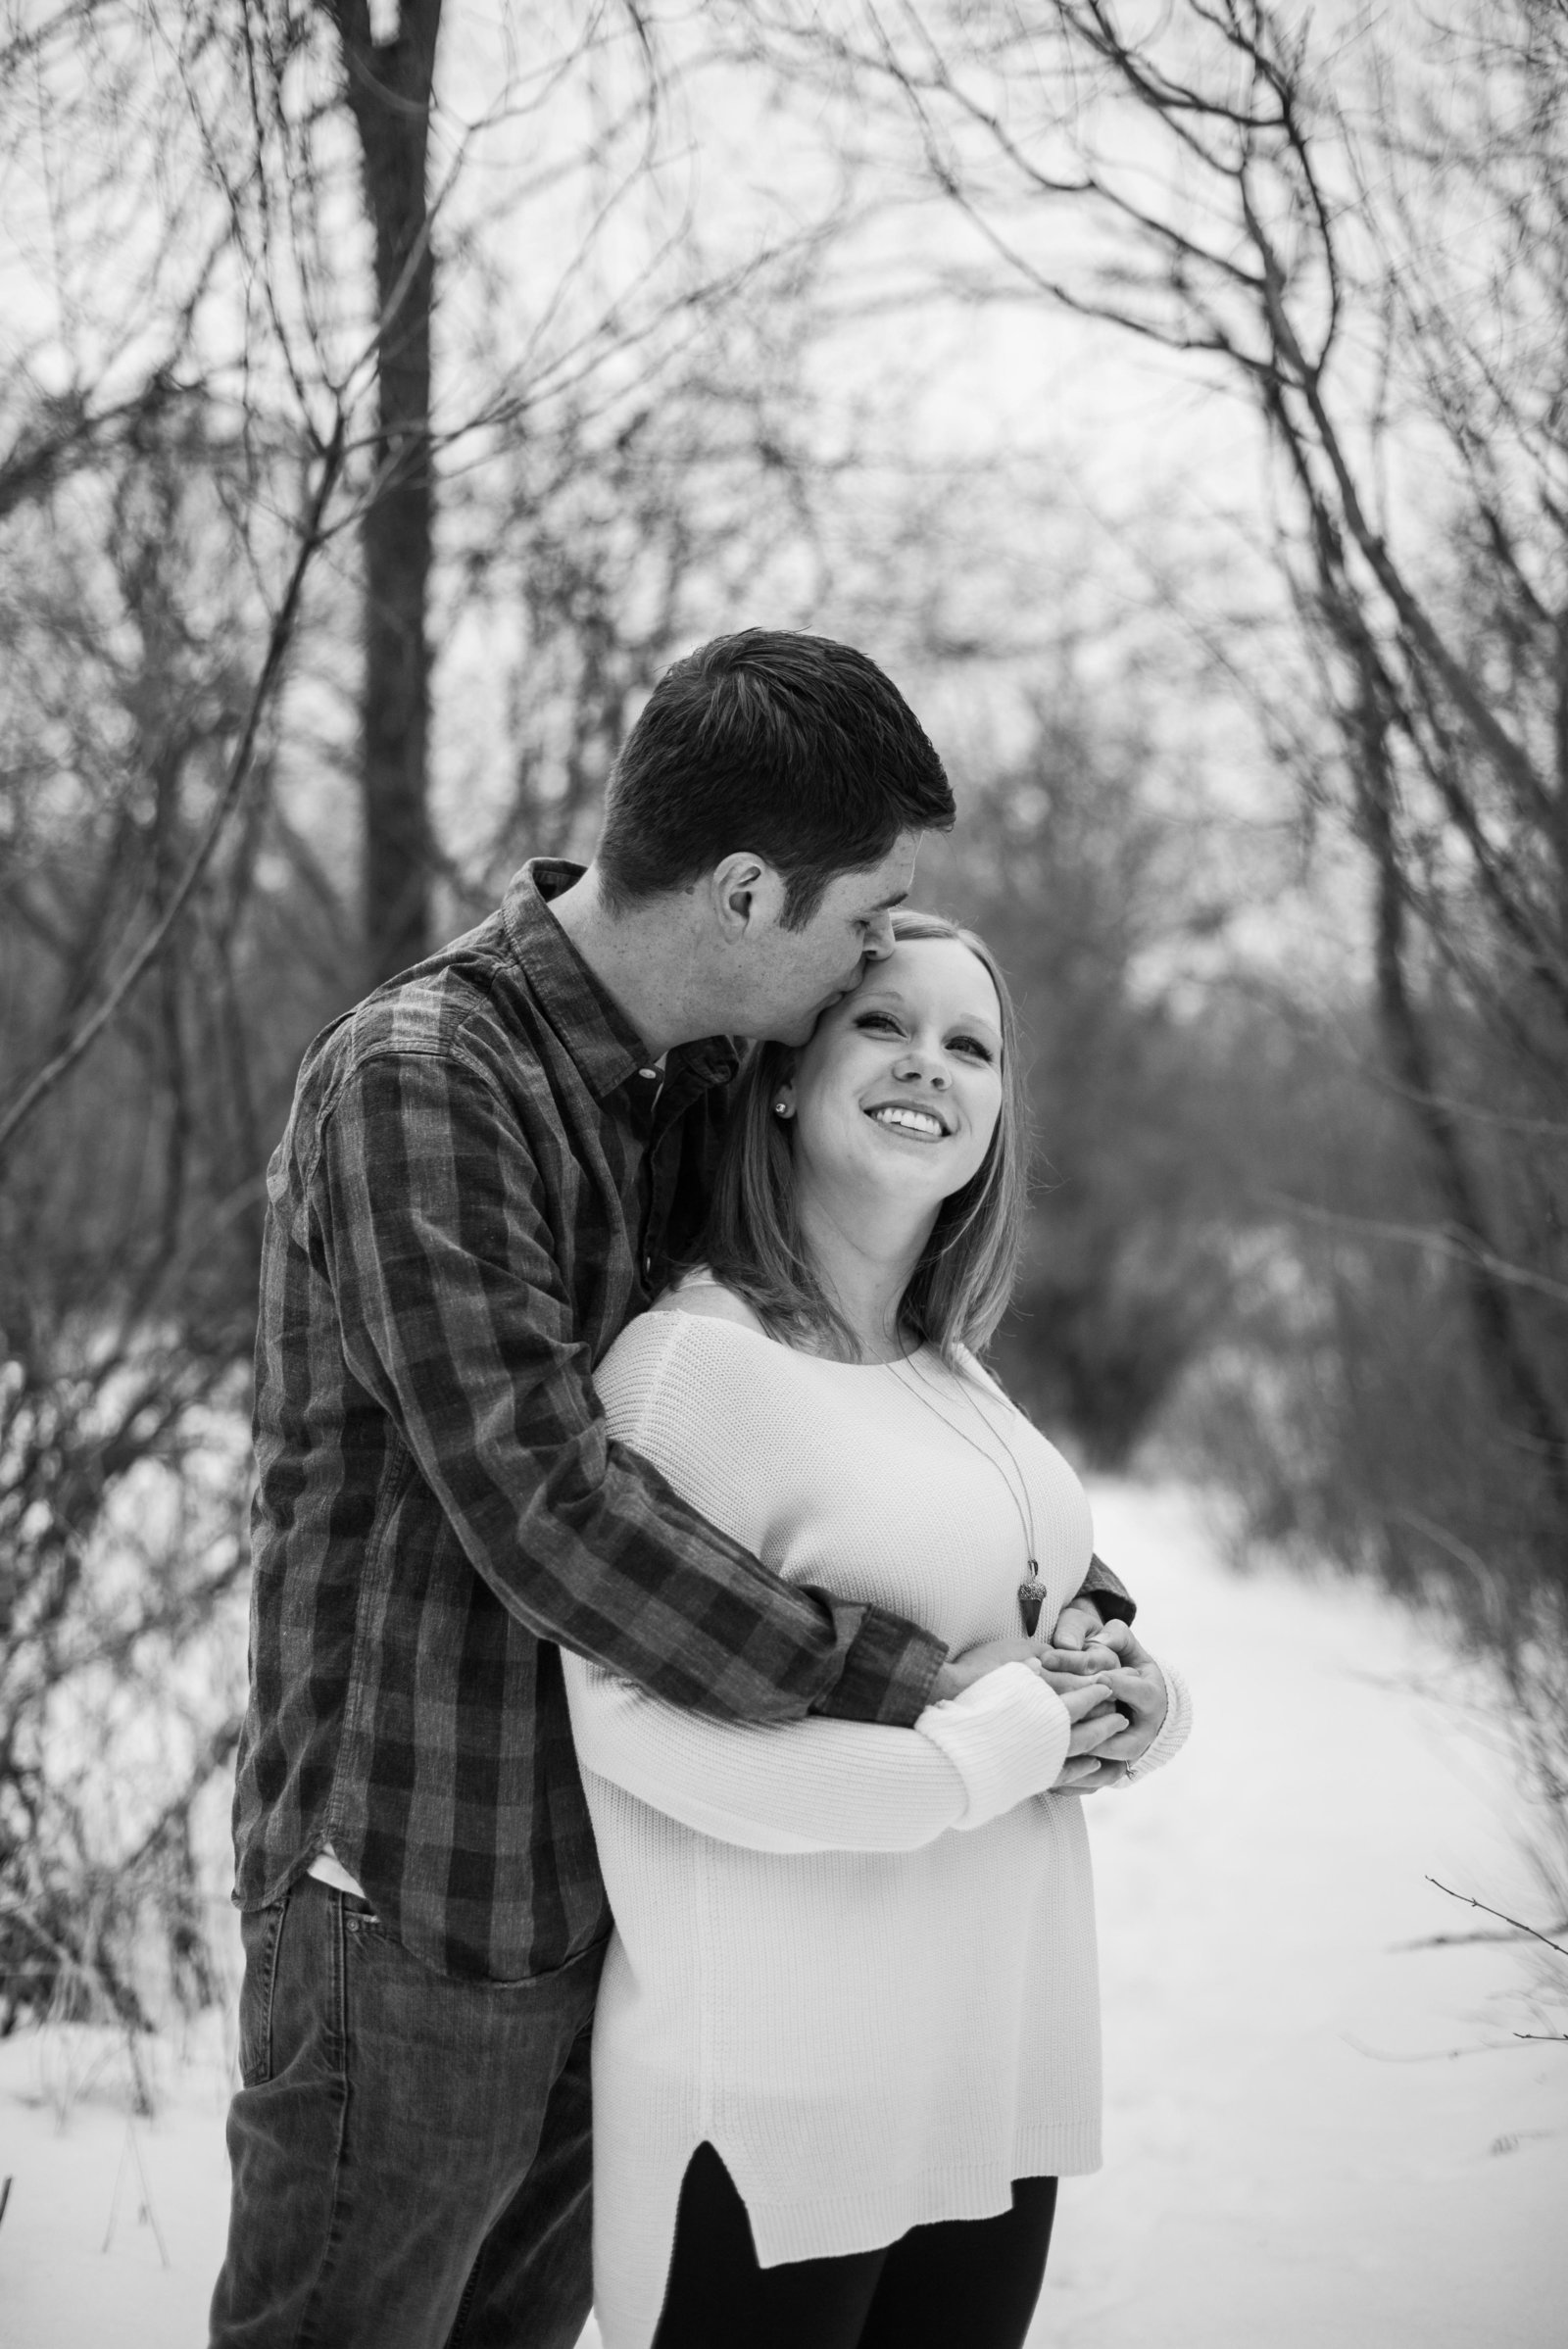 Minnesota Winter Engagement Photos 0975-2